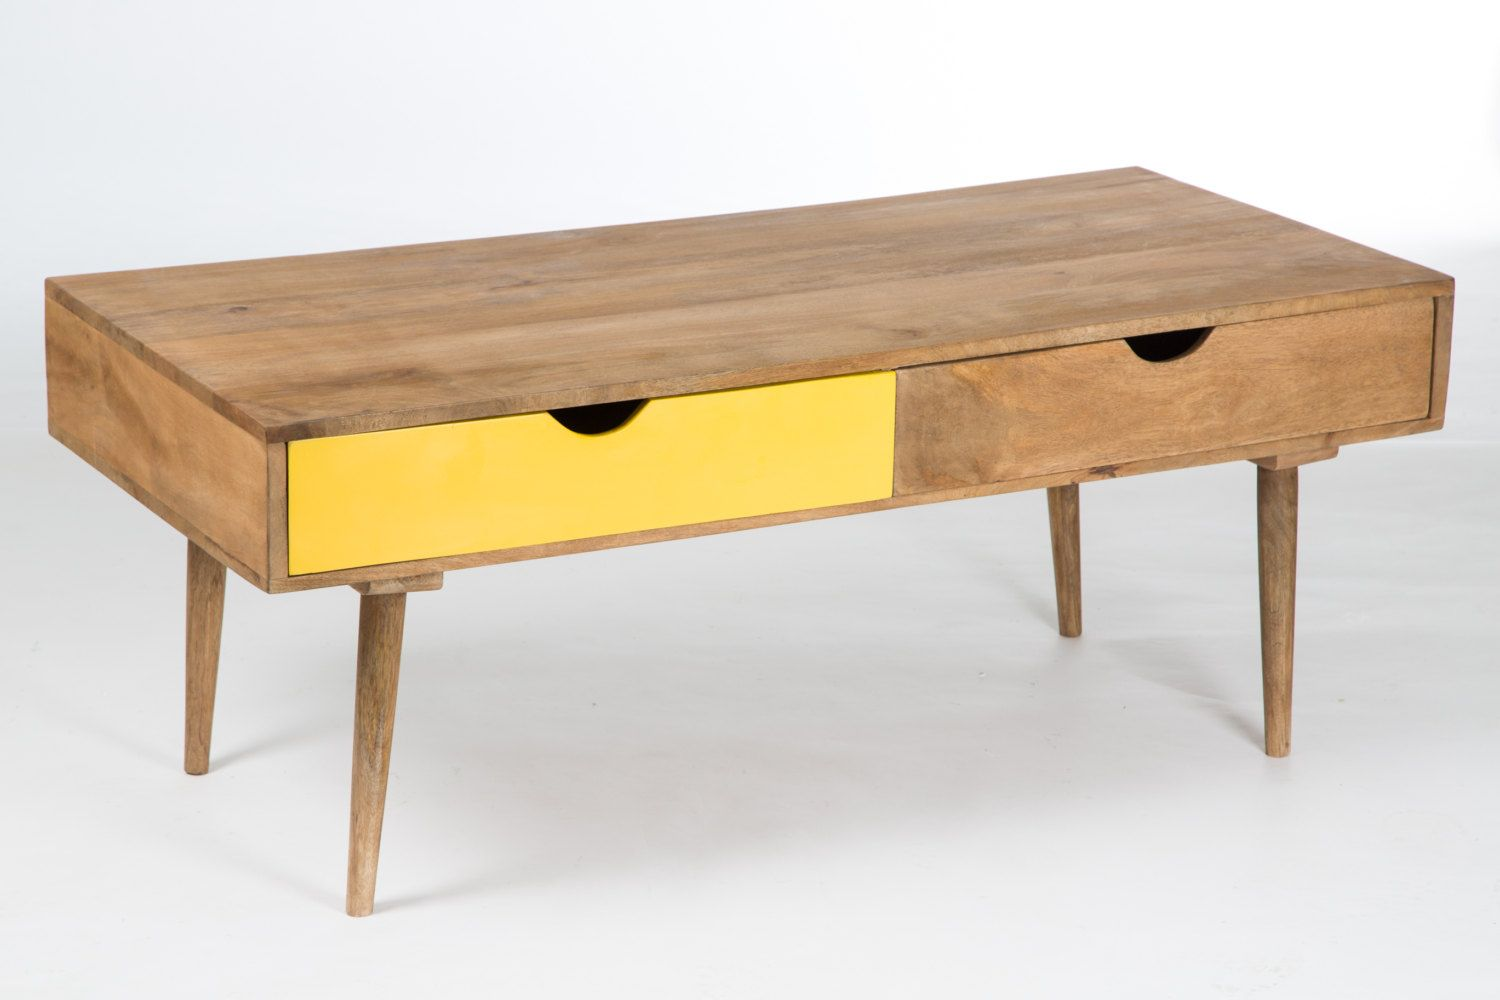 Scandinavian coffee table wood 4 drawers 499 00 EUR by